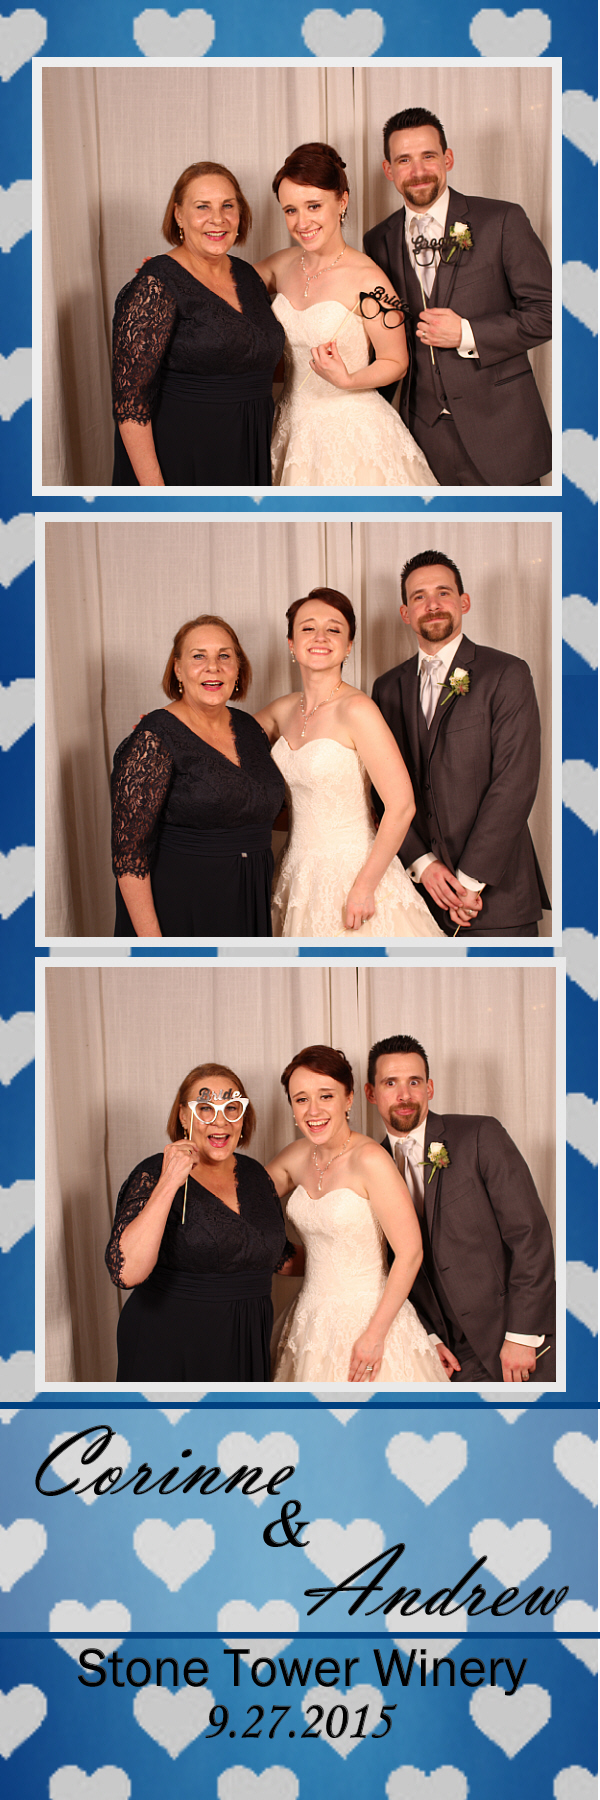 Guest House Events Photo Booth C&A (33).jpg